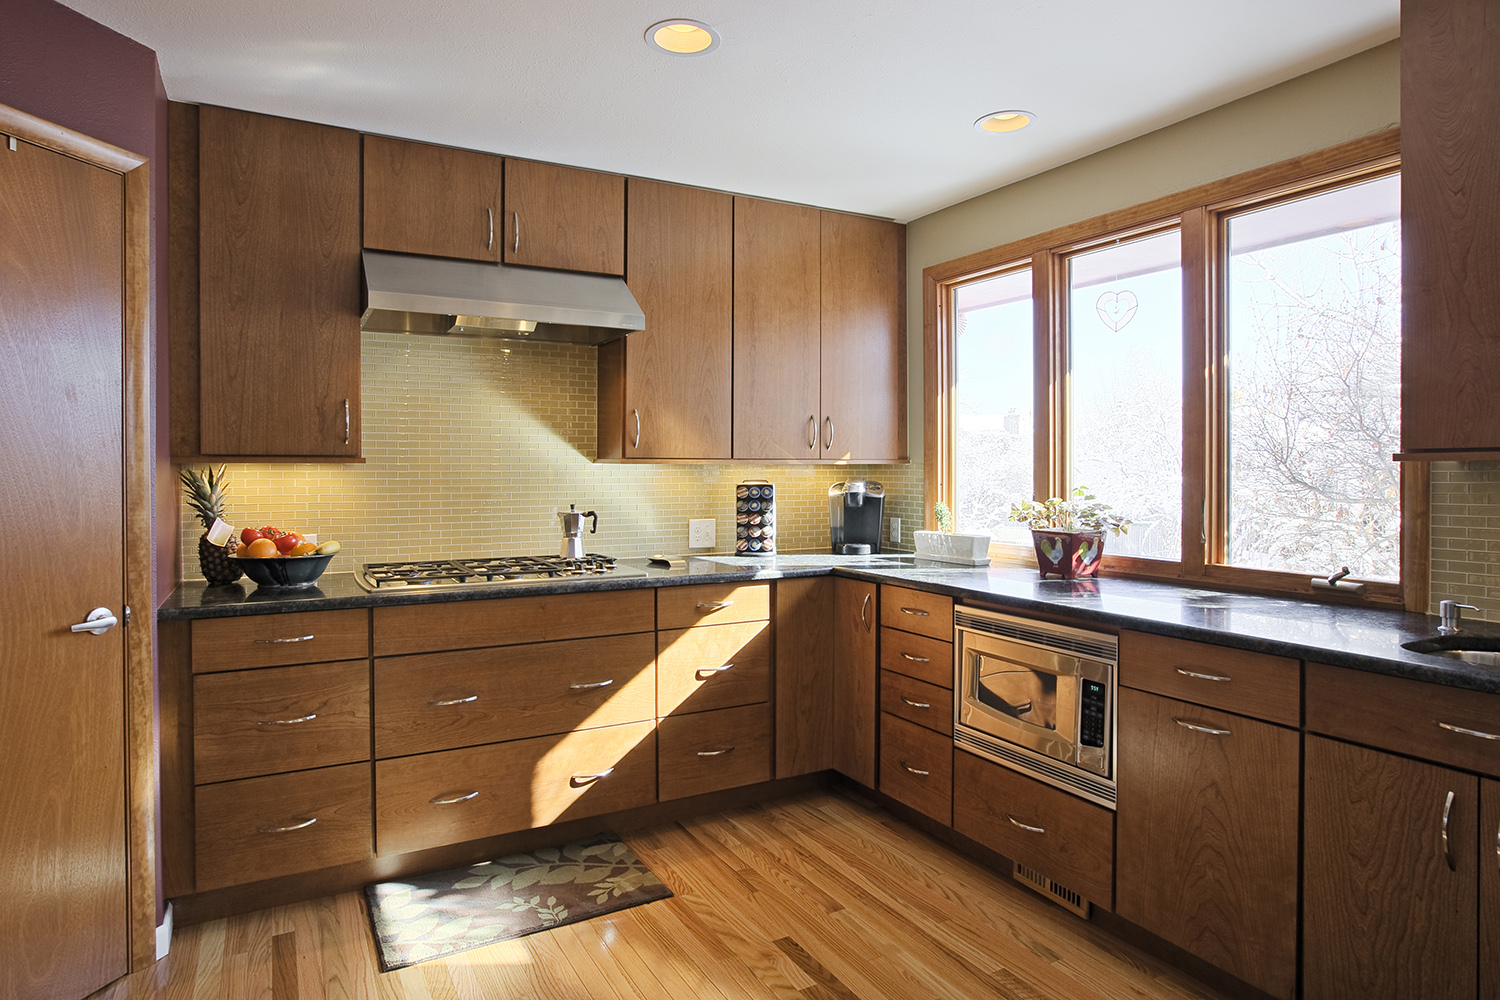 Kitchen Cabinets Chattanooga cabinets chattanooga | cabinet refinishing & cabinet refacing |